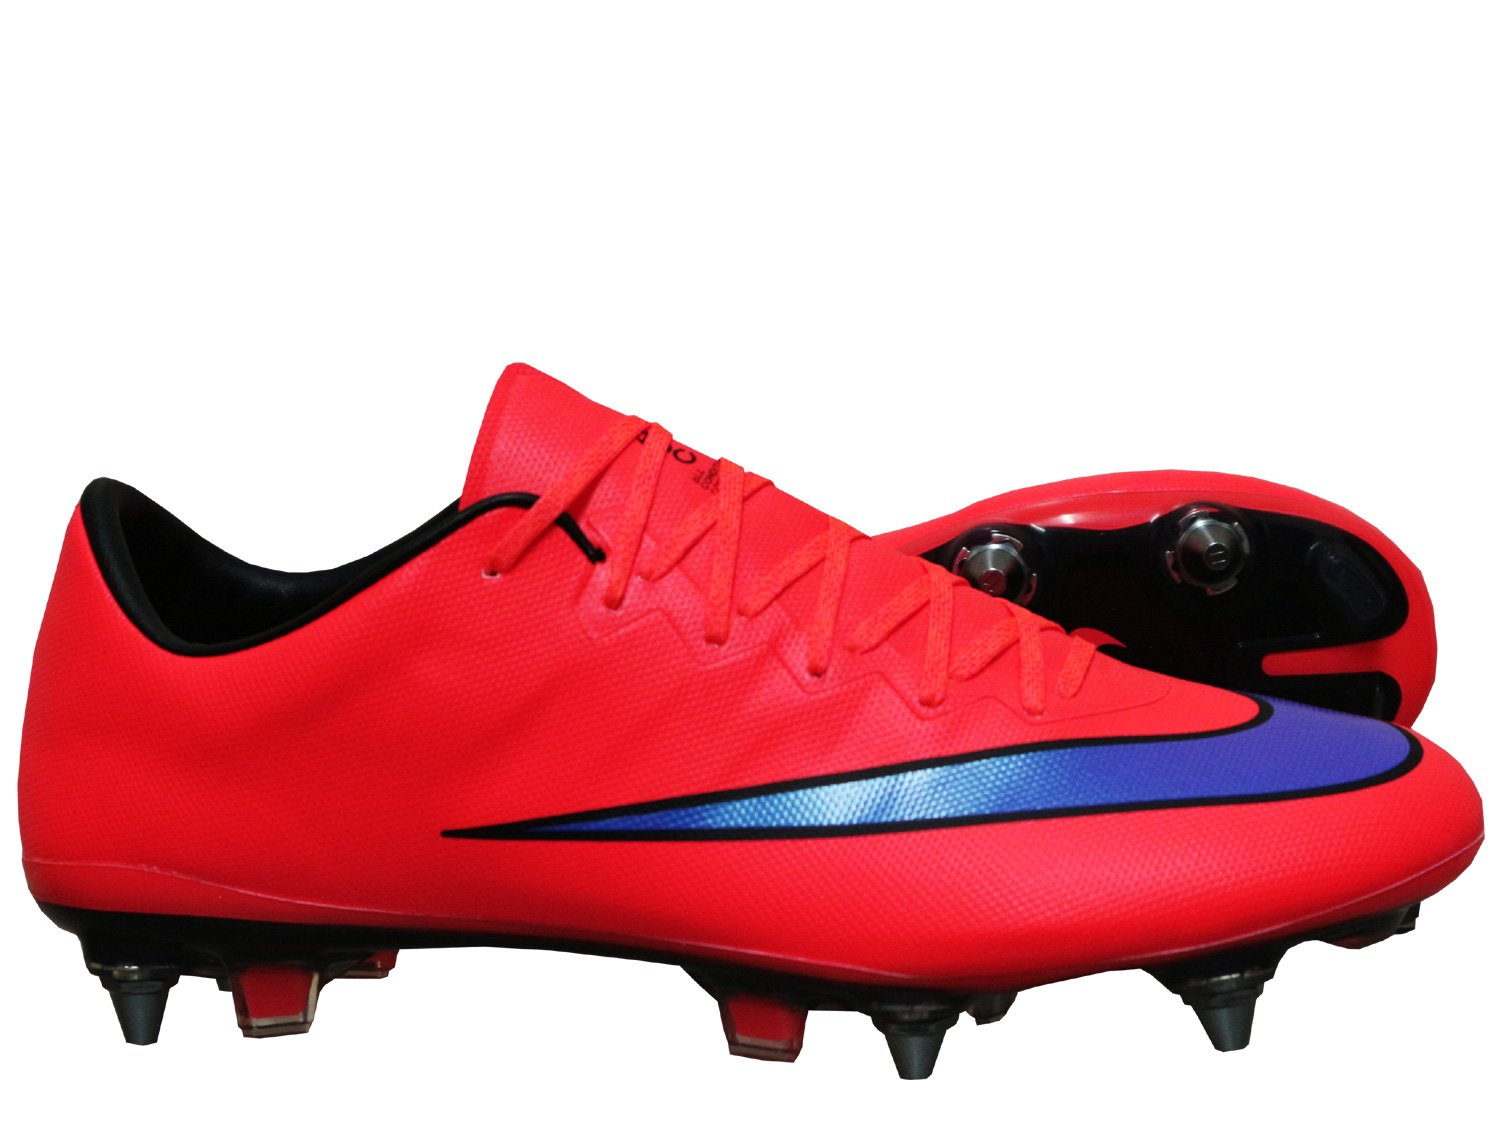 timeless design a4c94 ba953 Nike Mercurial Vapor X SG Pro Football Boots Cleats - Football Shoe Red   Amazon.co.uk  Sports   Outdoors